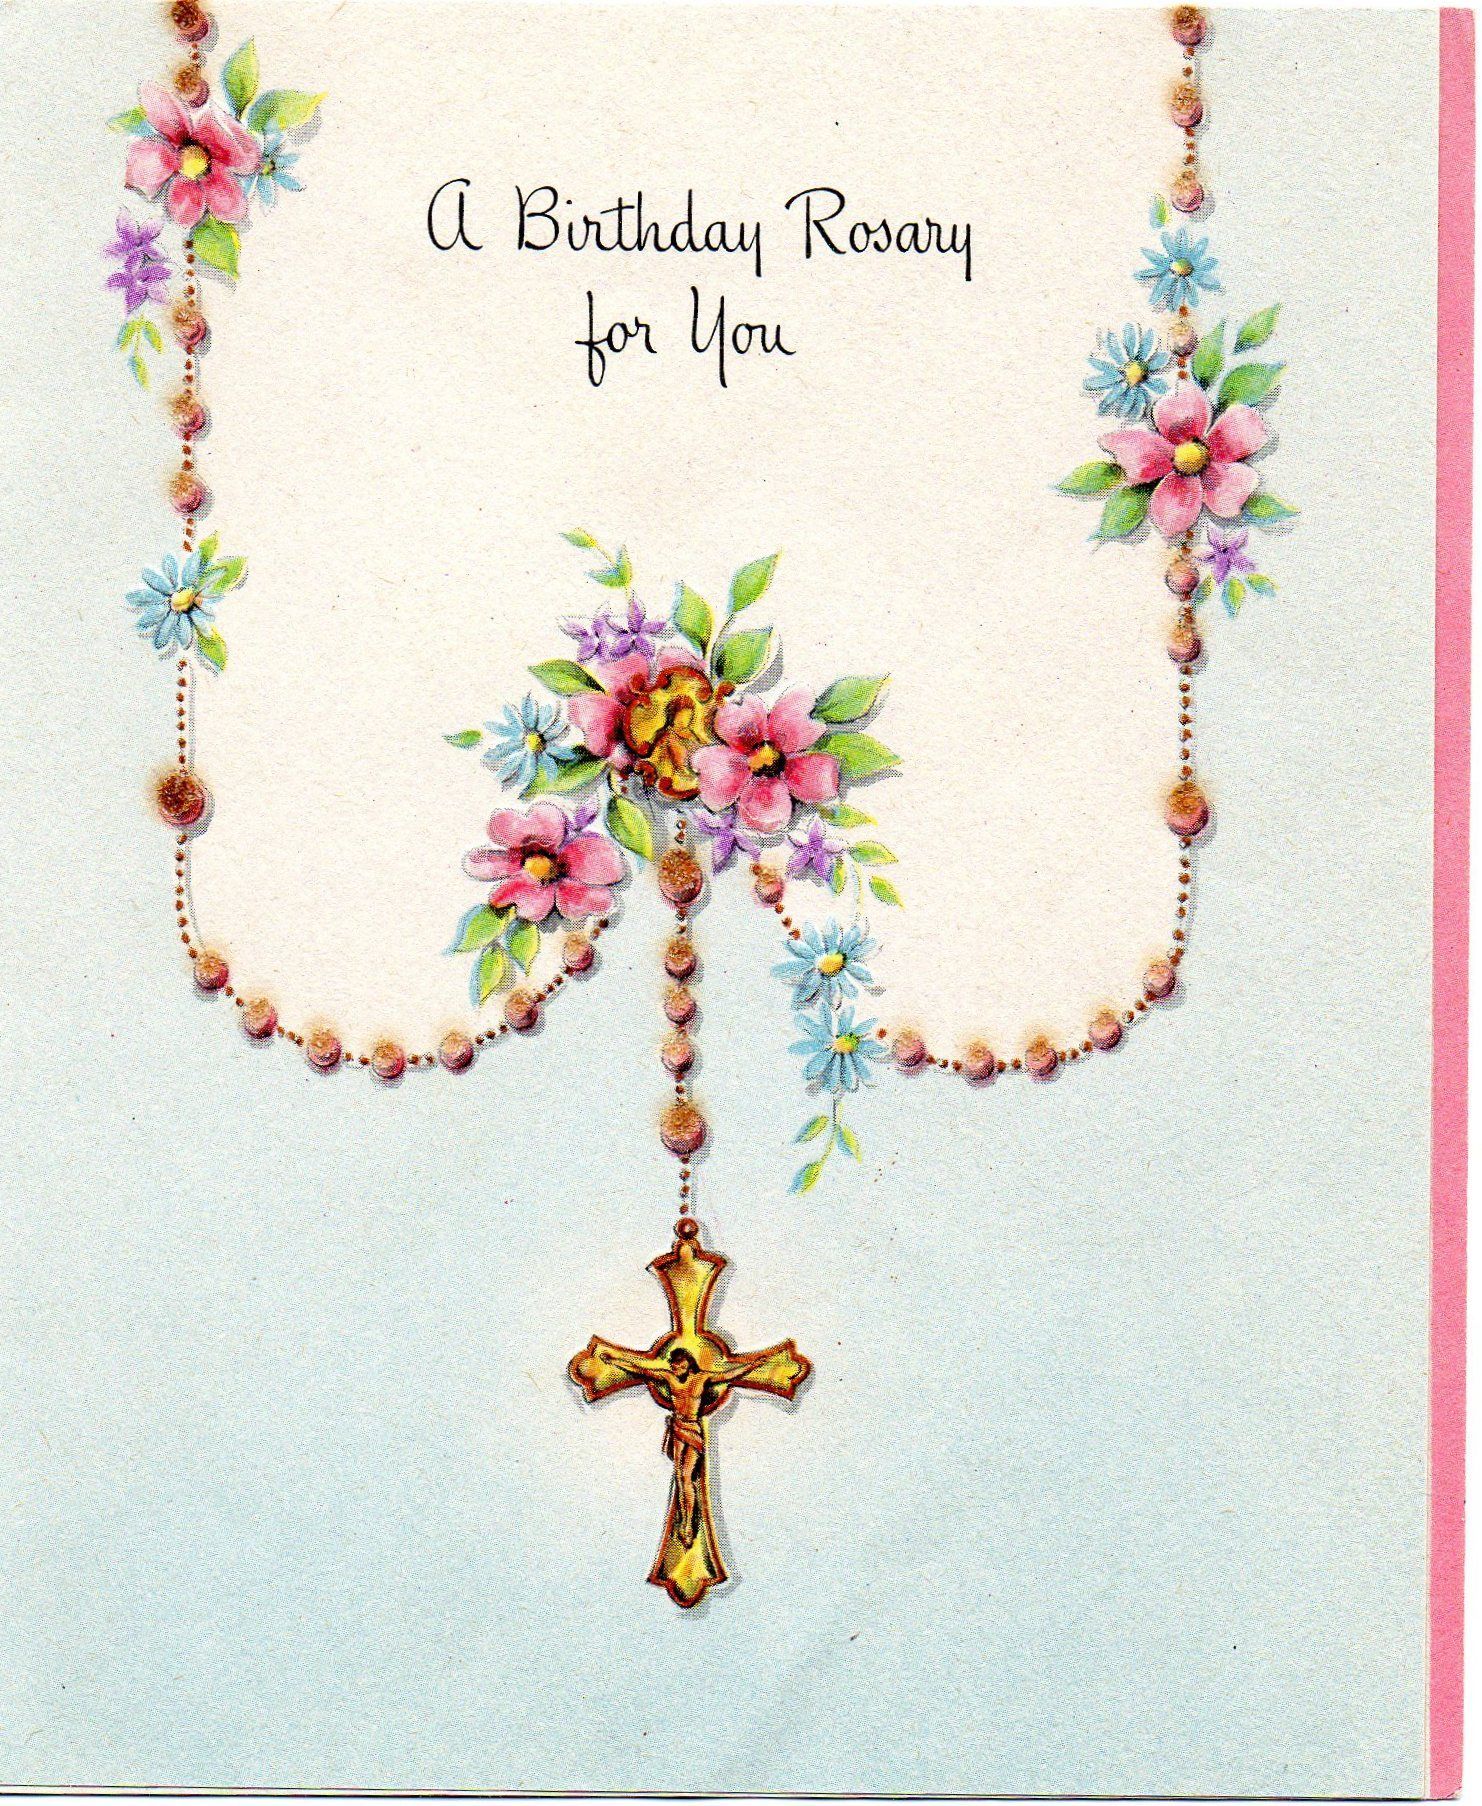 small resolution of a birthday rosary for you may god watch over you each day and bless you lovingly this is the prayer i m saying on your birthday rosary